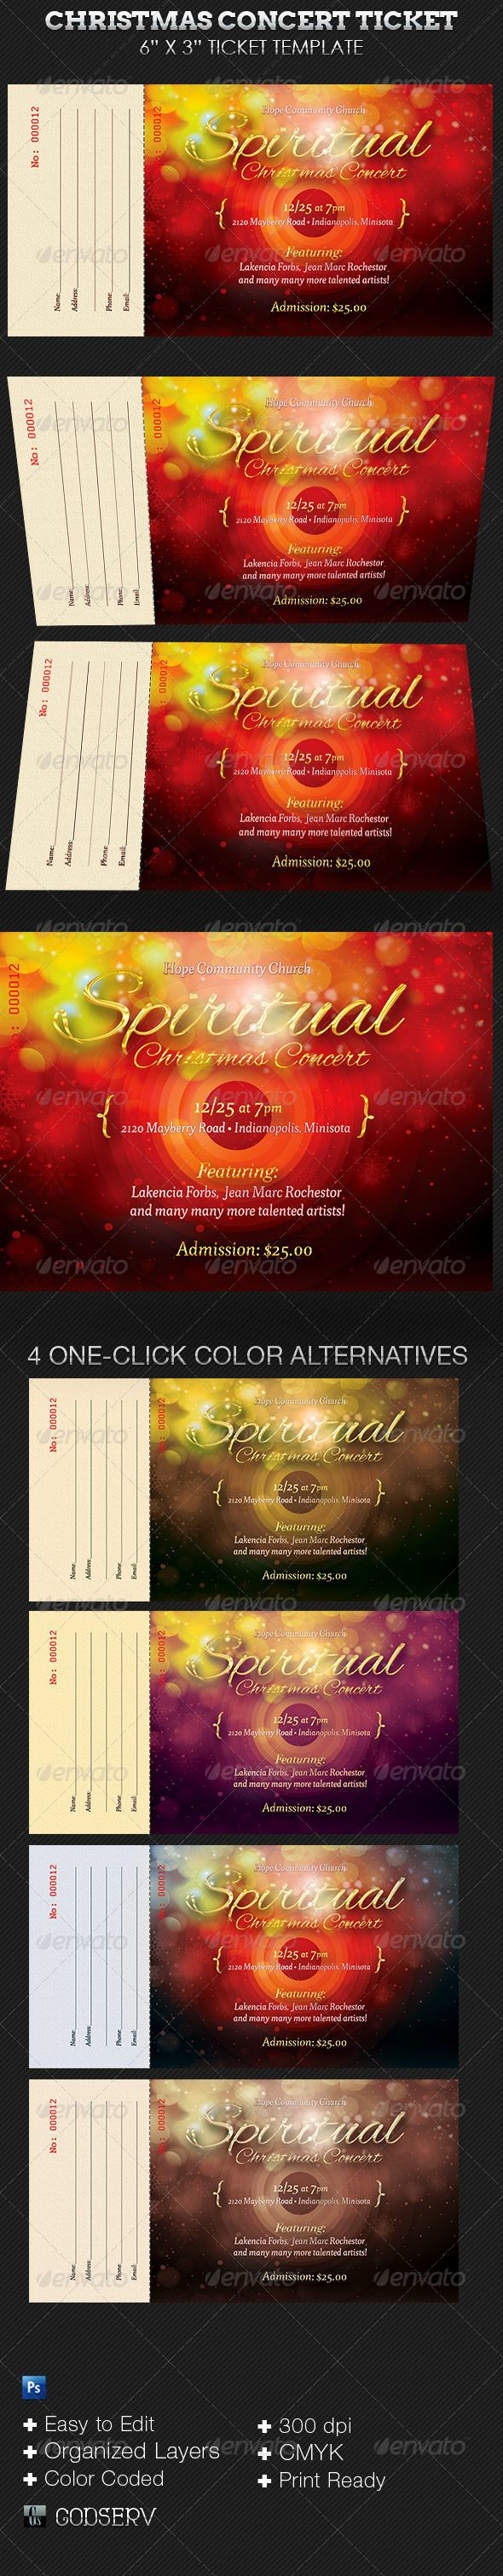 Concert Ticket Template Free Download Entrancing 14 Best Layoutstext And Images Images On Pinterest  Brochures .